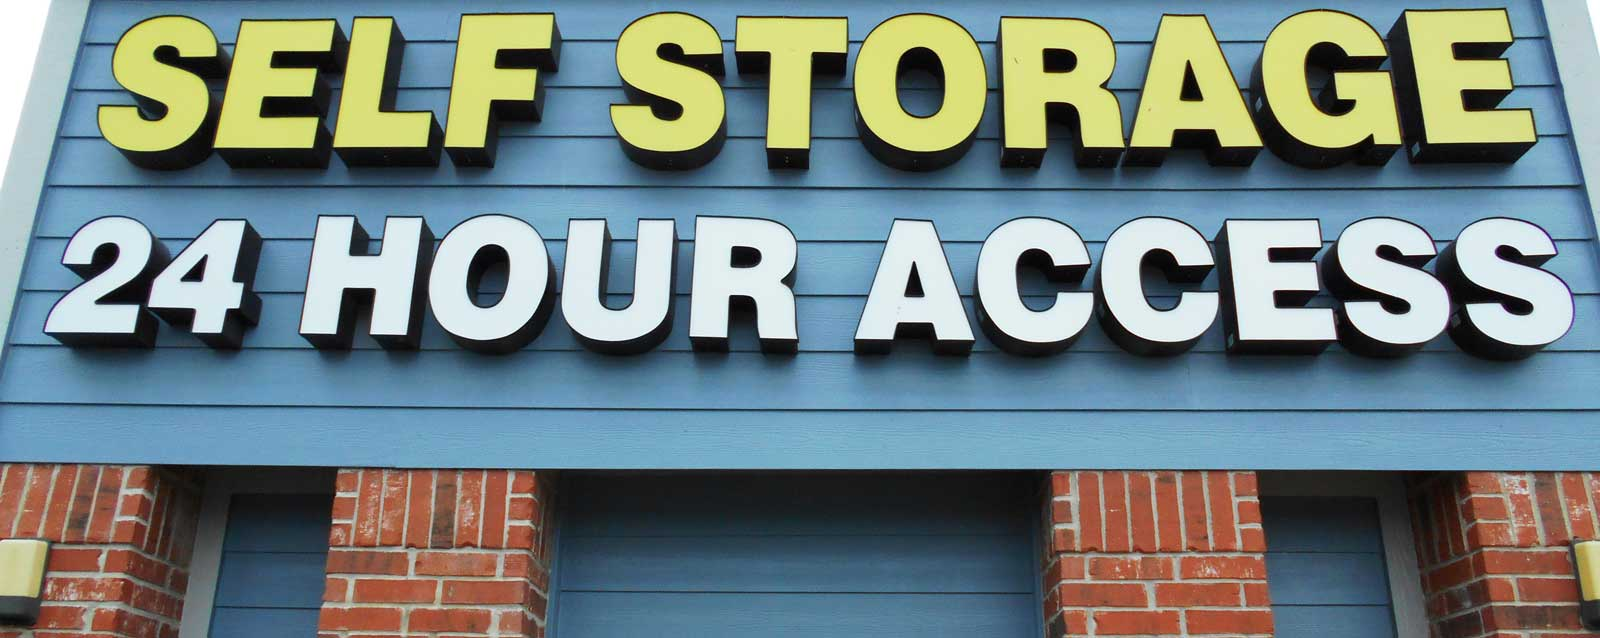 24 hour access at fort worth self storage